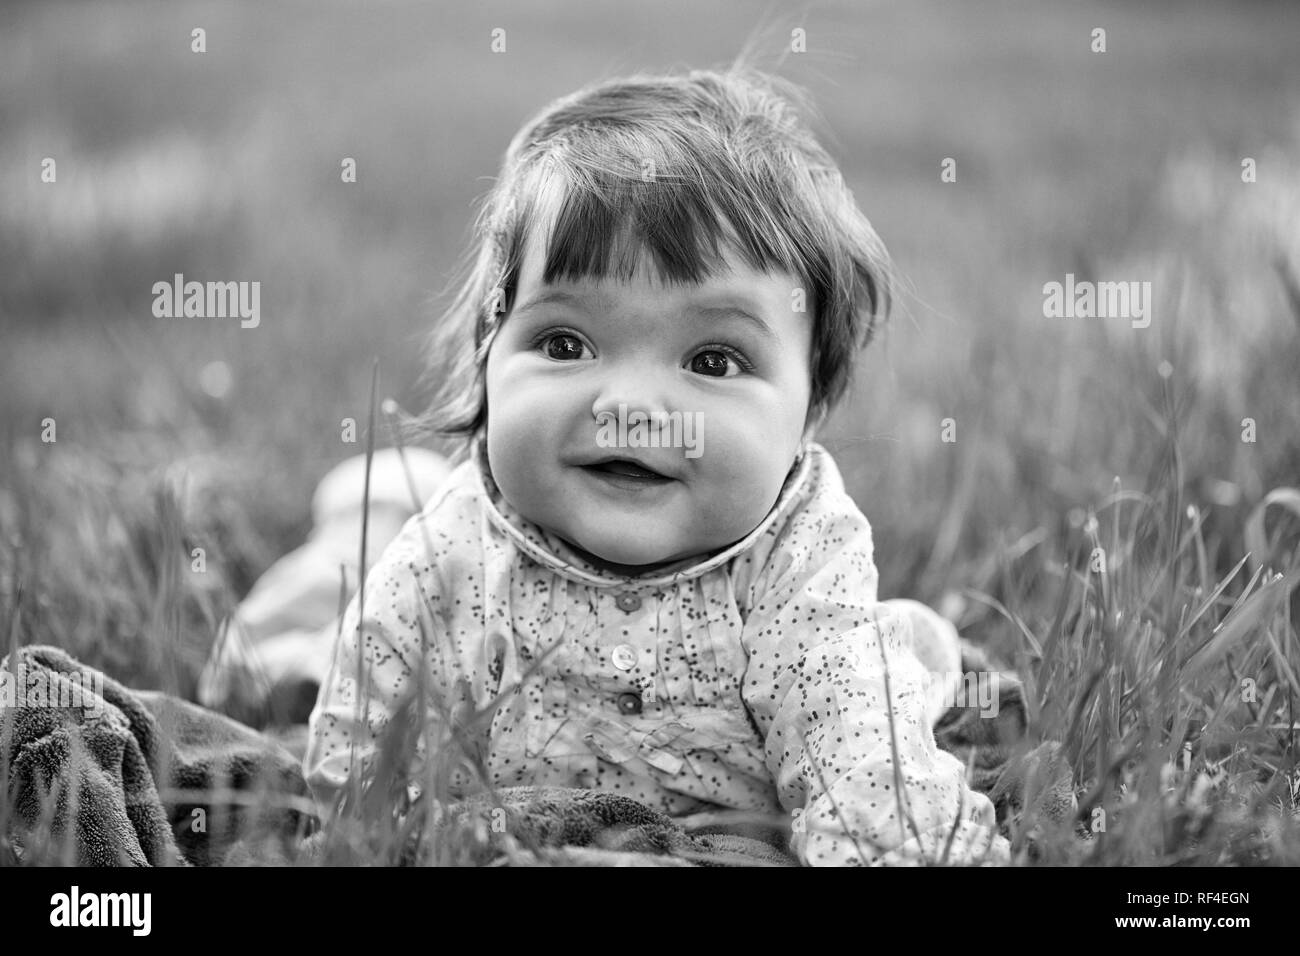 Cute baby girl on green grass - Stock Image